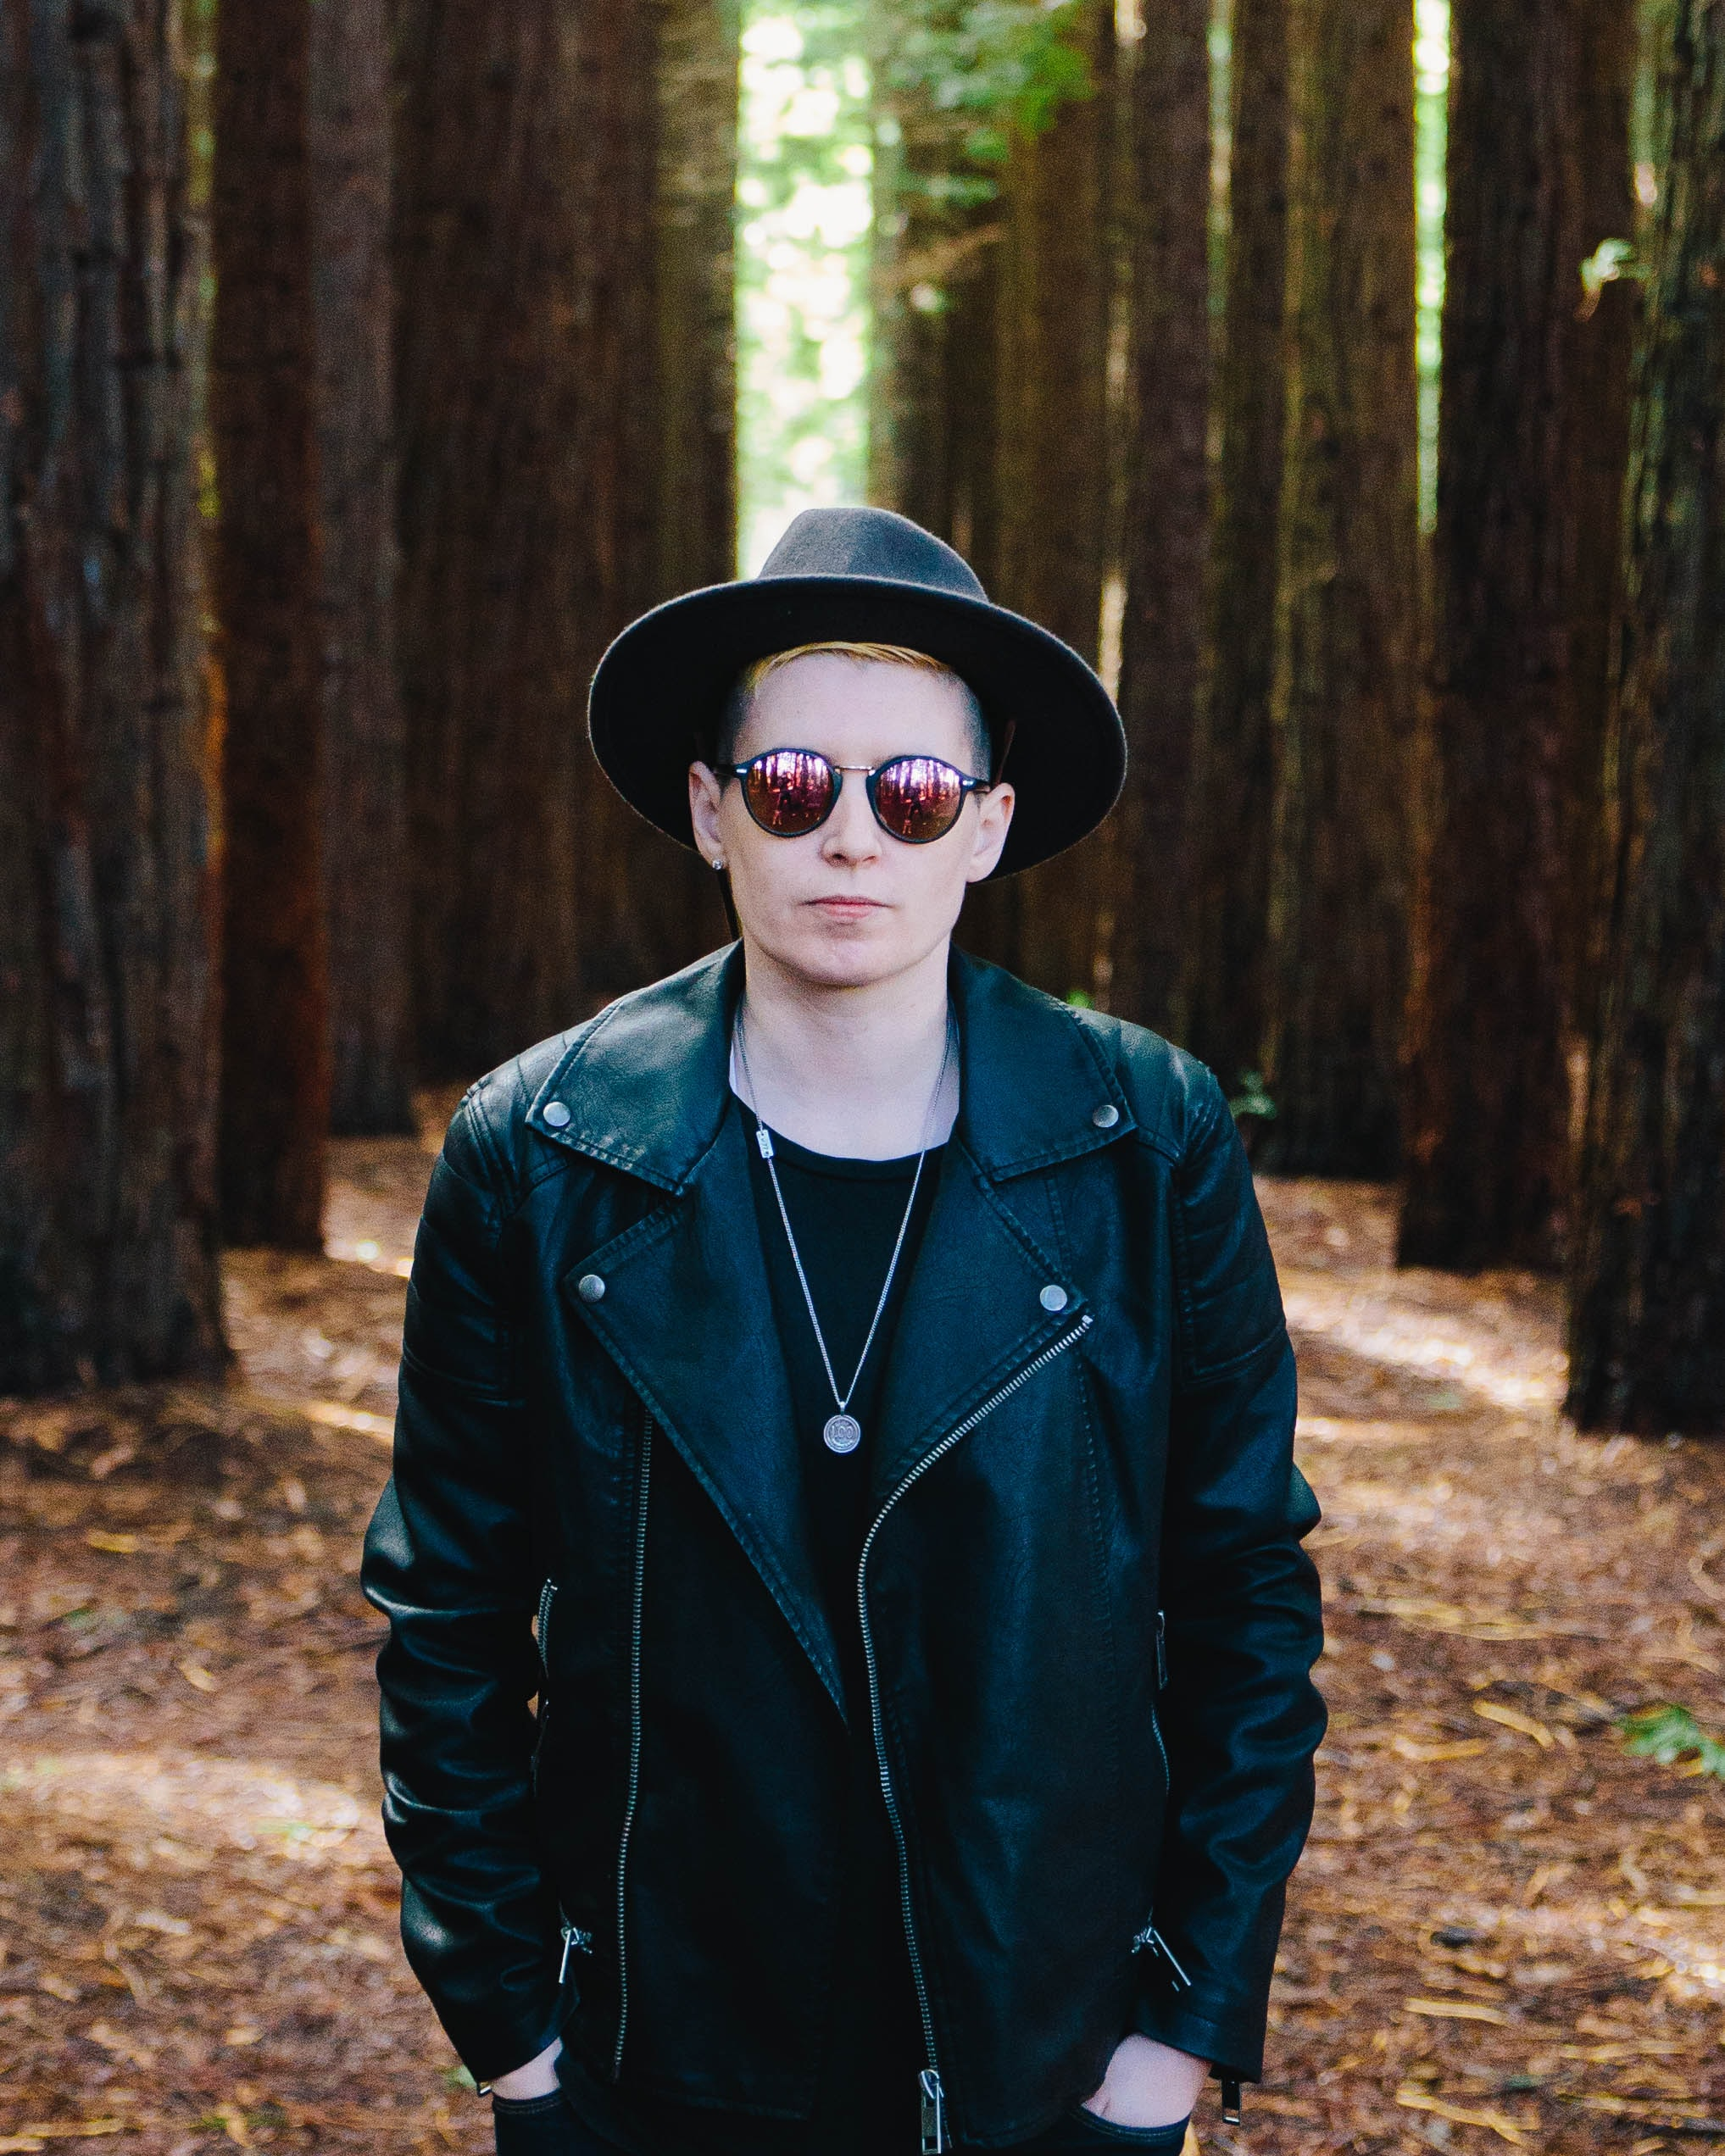 A man in a leather jacket, sunglasses and a hat in a forest